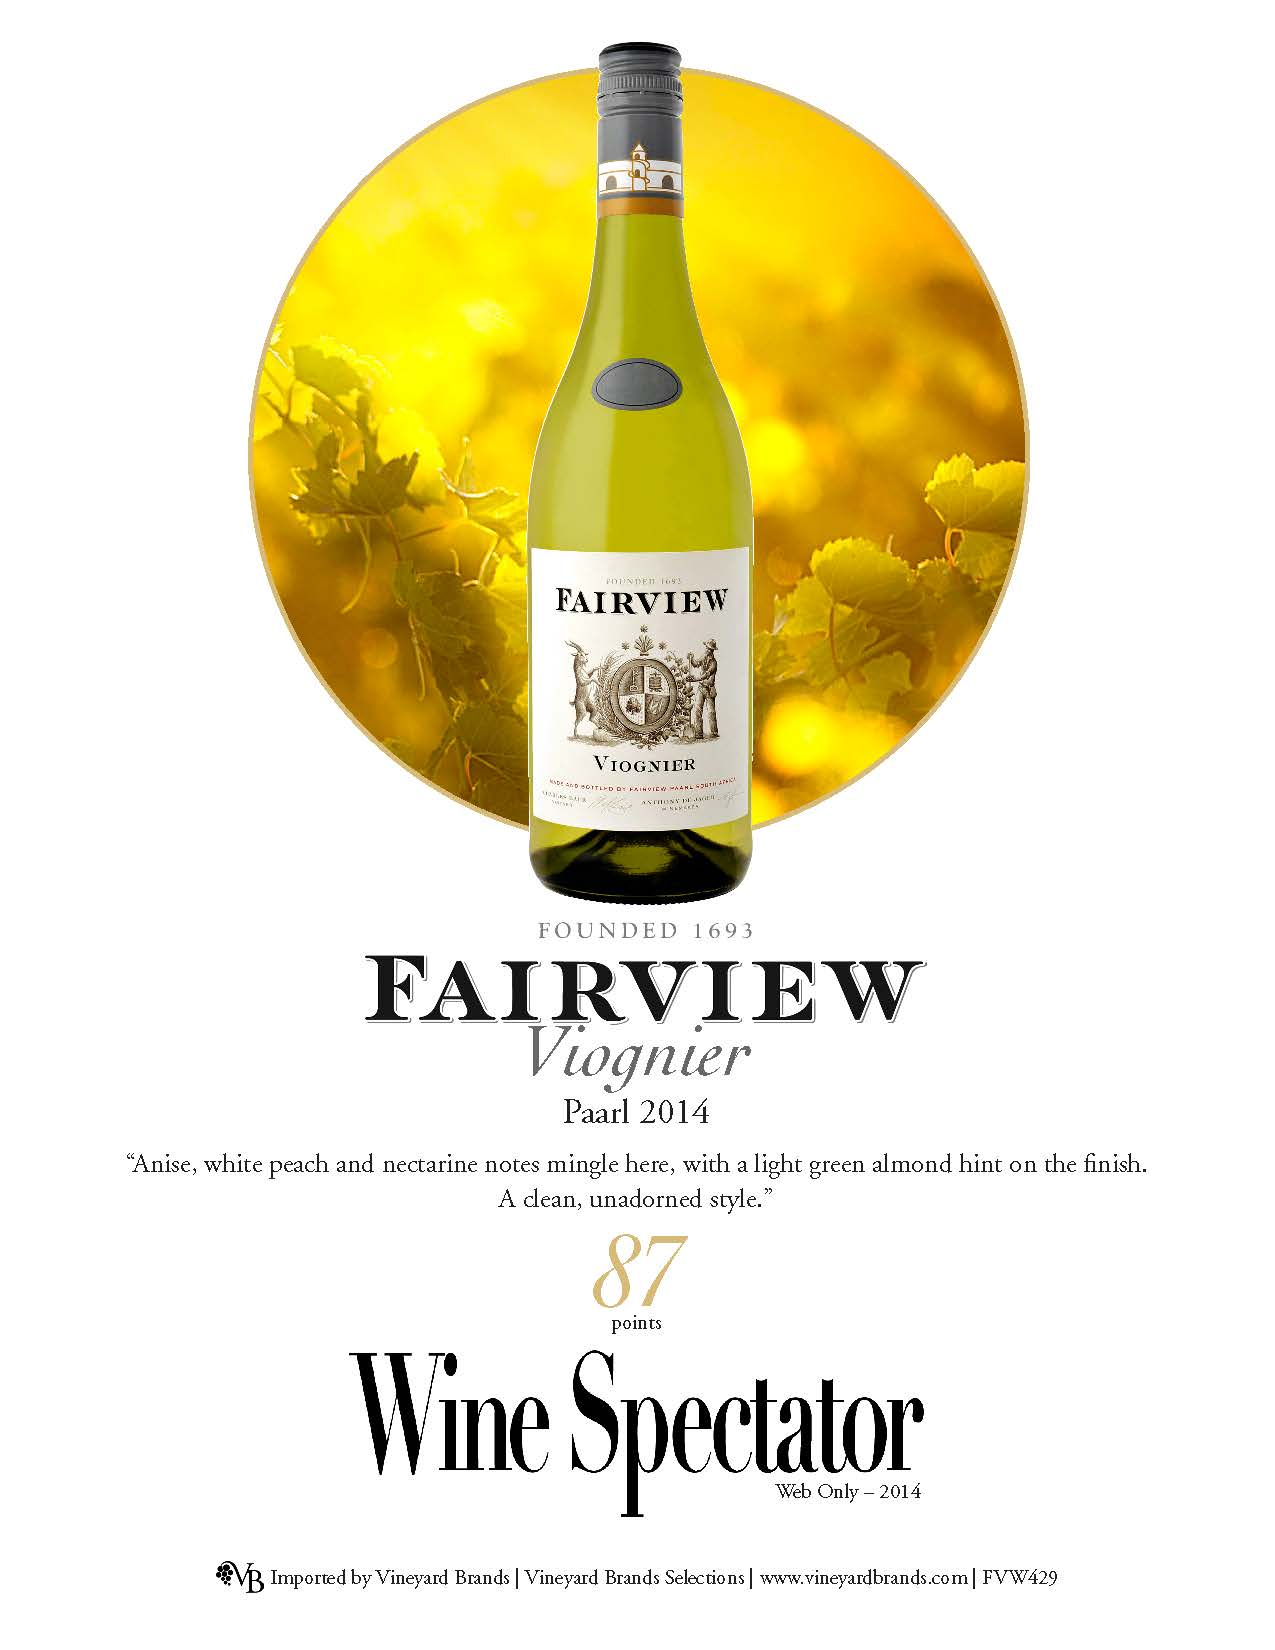 Fairview Viognier 2014